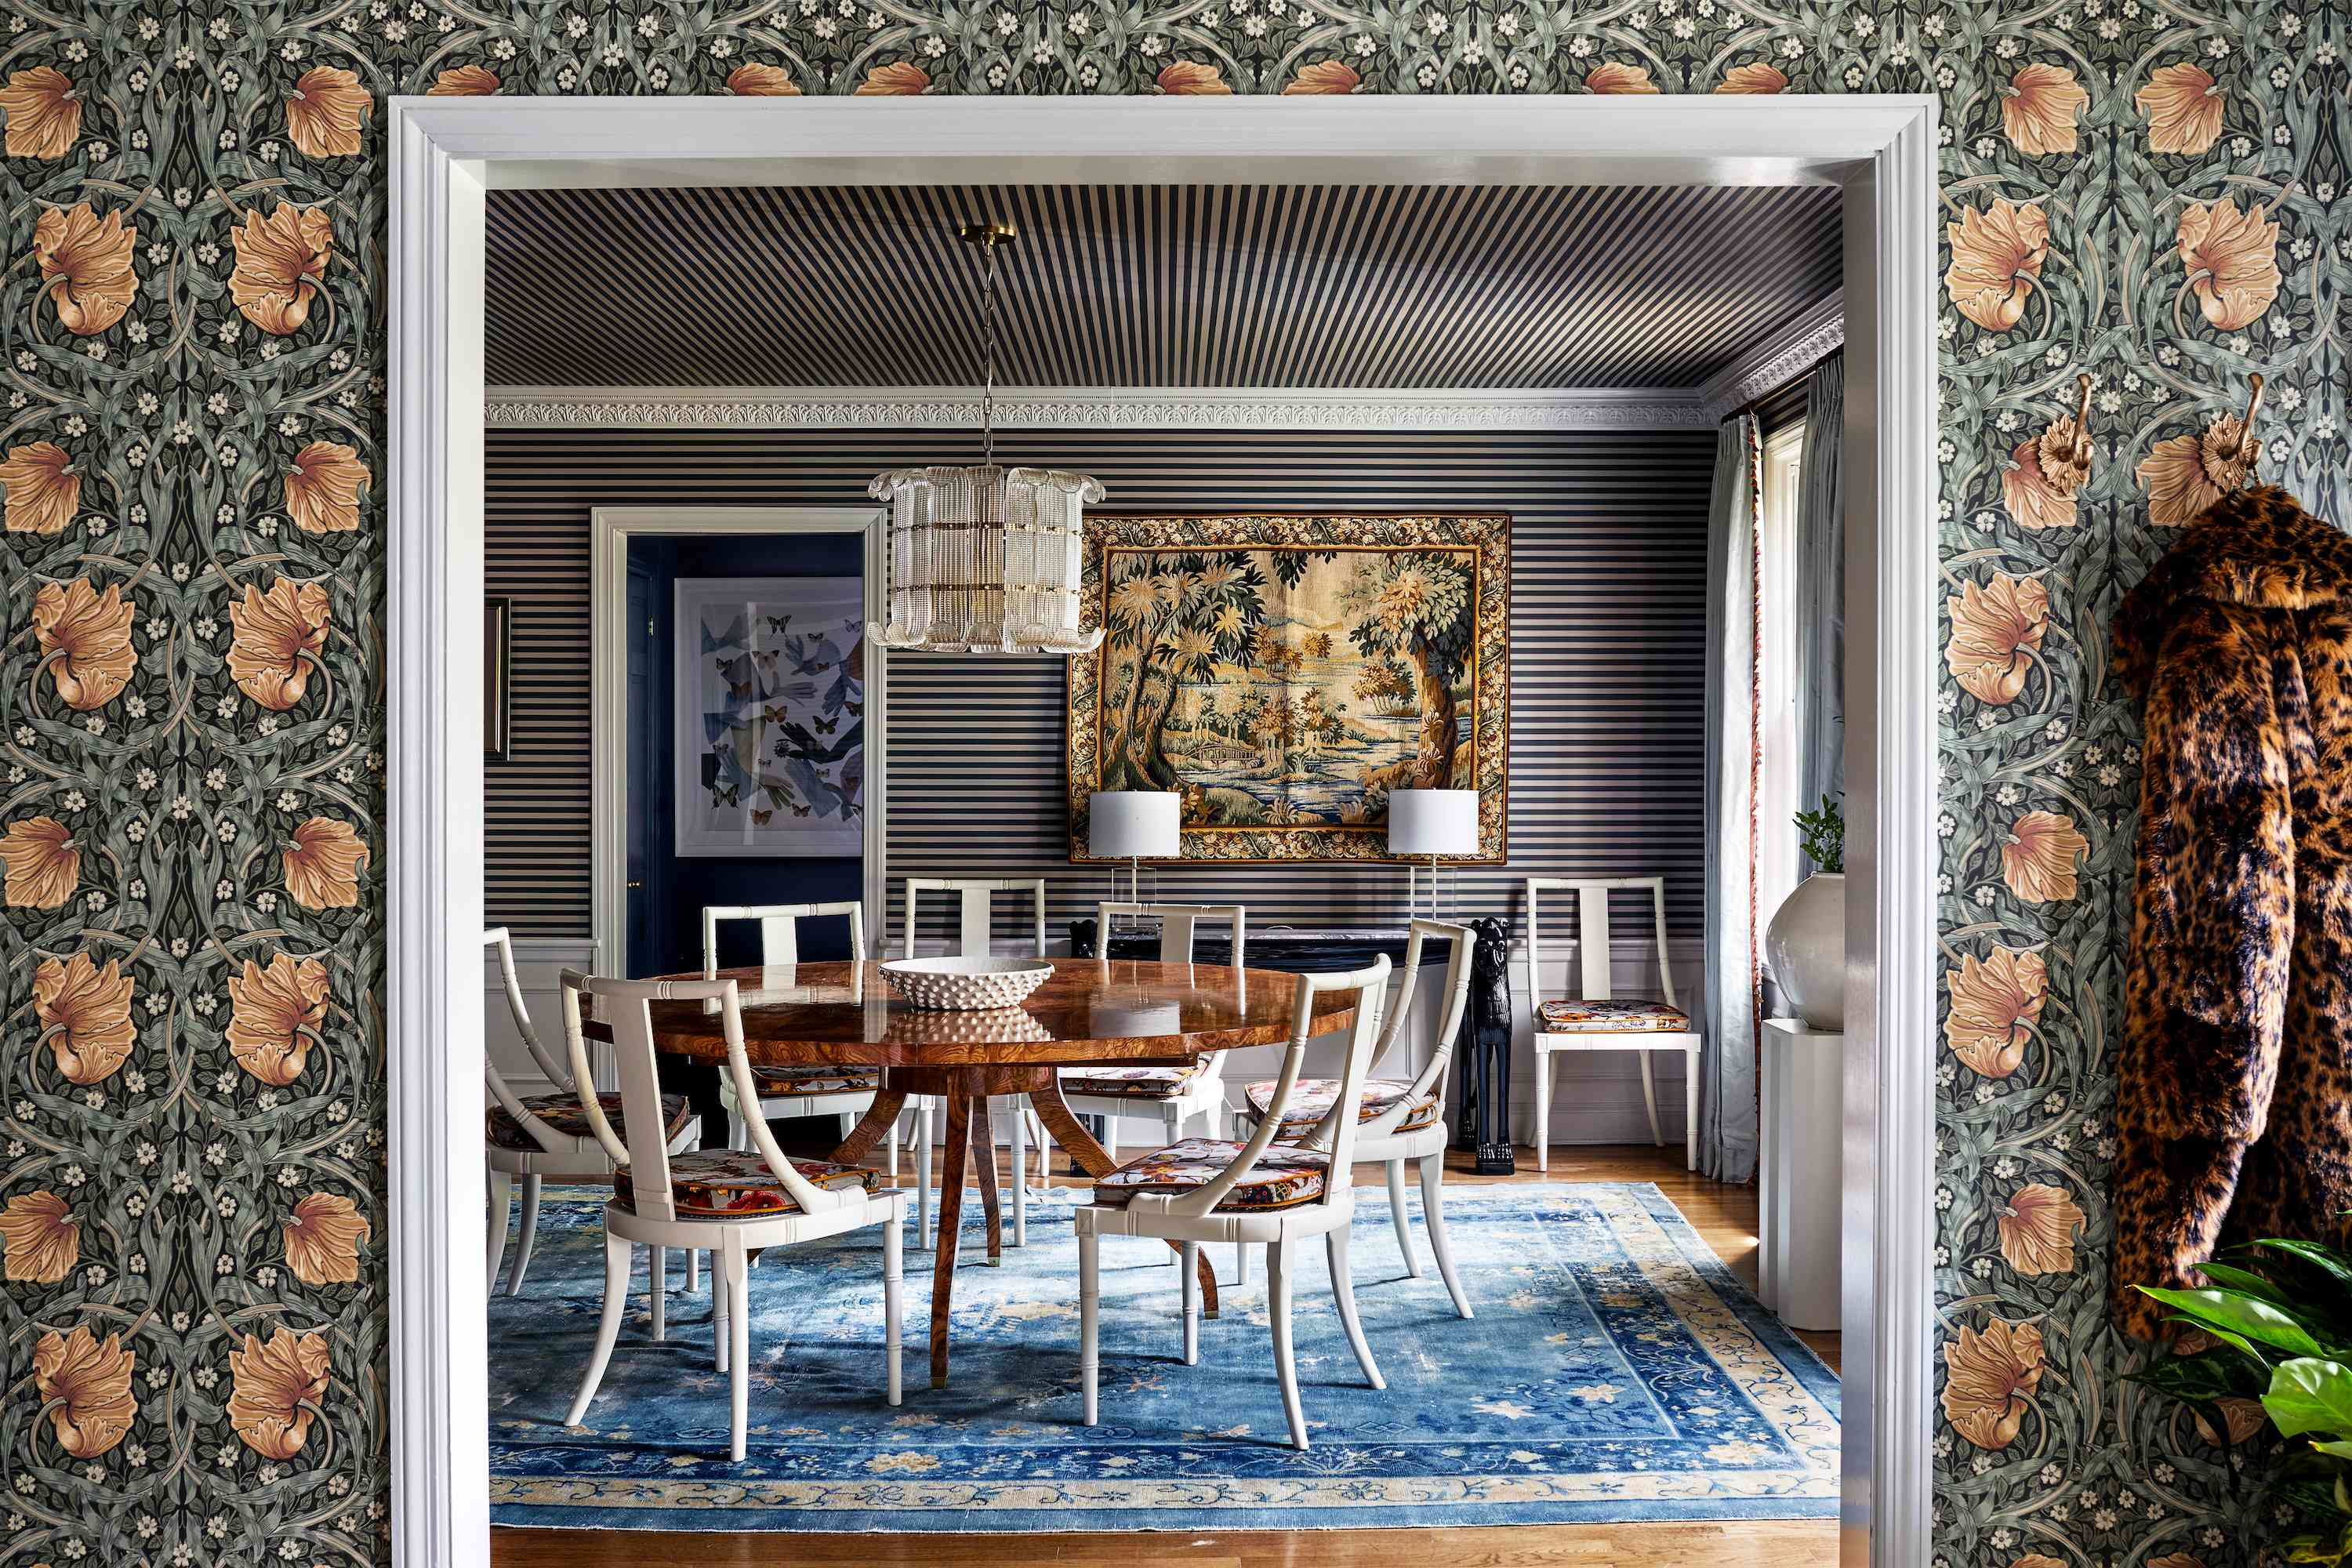 Dining room with luxe wallpaper and traditional table.